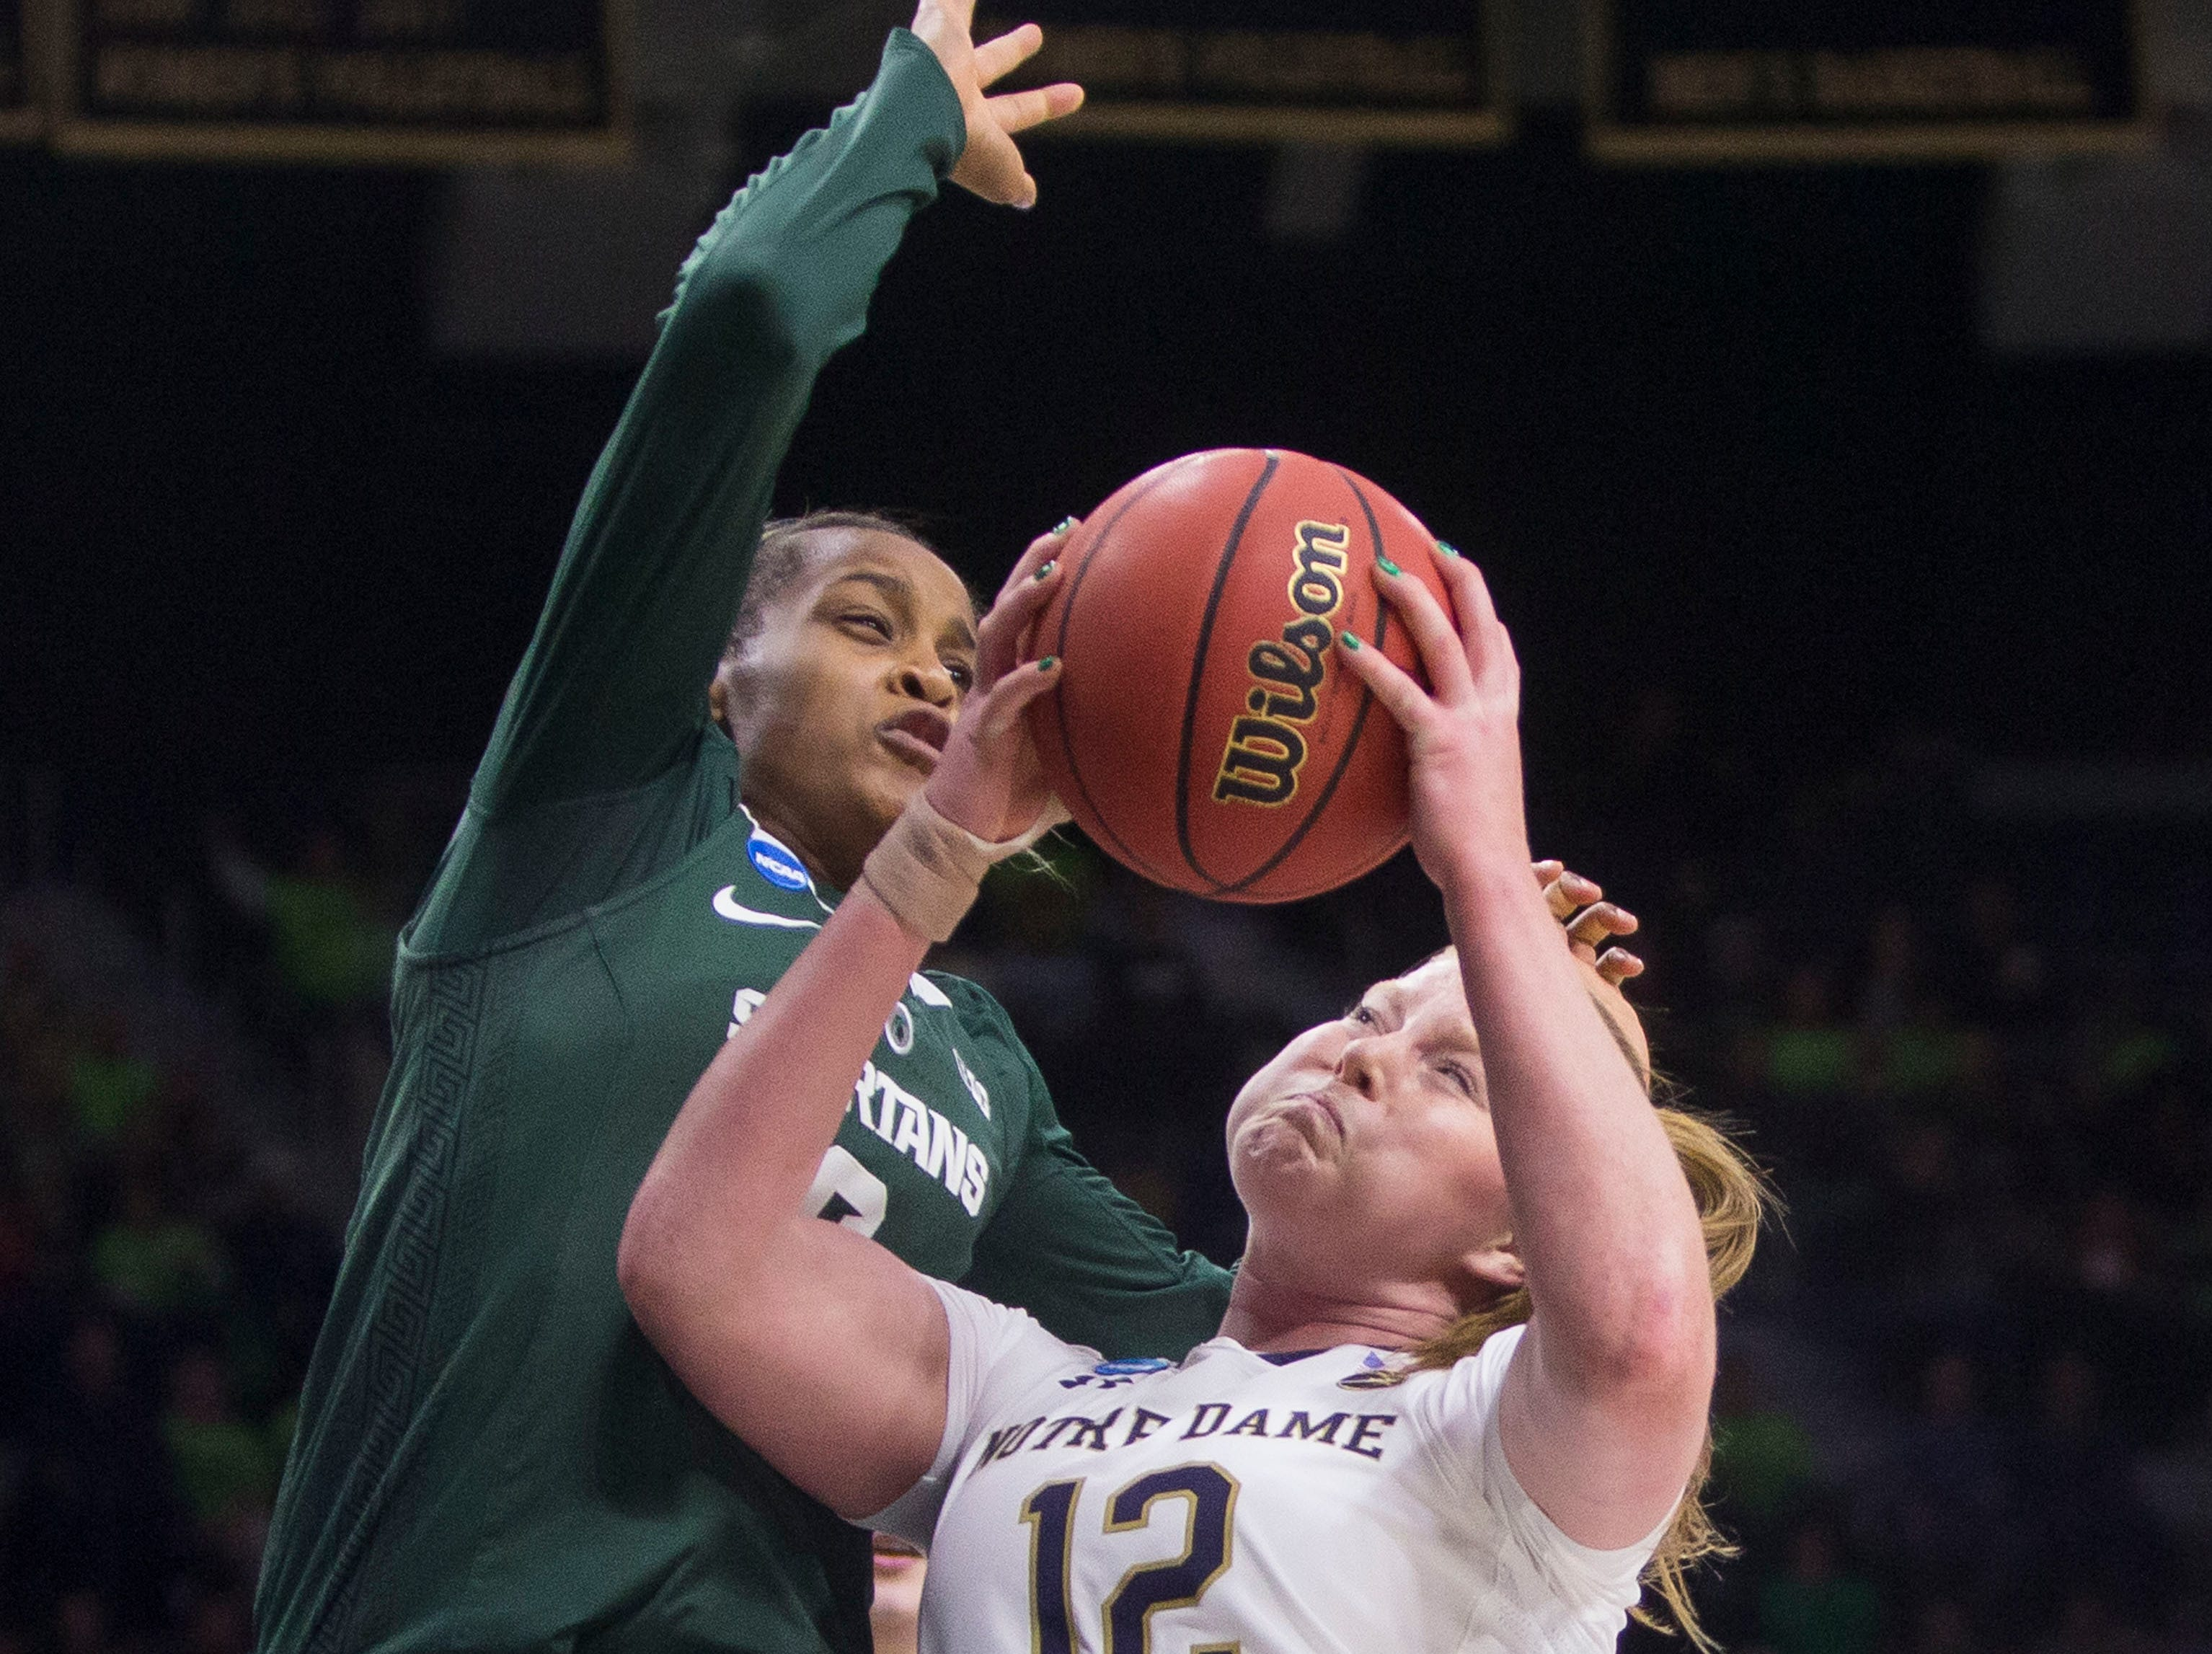 Notre Dame's Abby Prohaska (12) goes up to shoot under pressure from Michigan State's Shay Colley during a second-round game in the NCAA women's college basketball tournament in South Bend, Ind., Monday, March 25, 2019. (AP Photo/Robert Franklin)